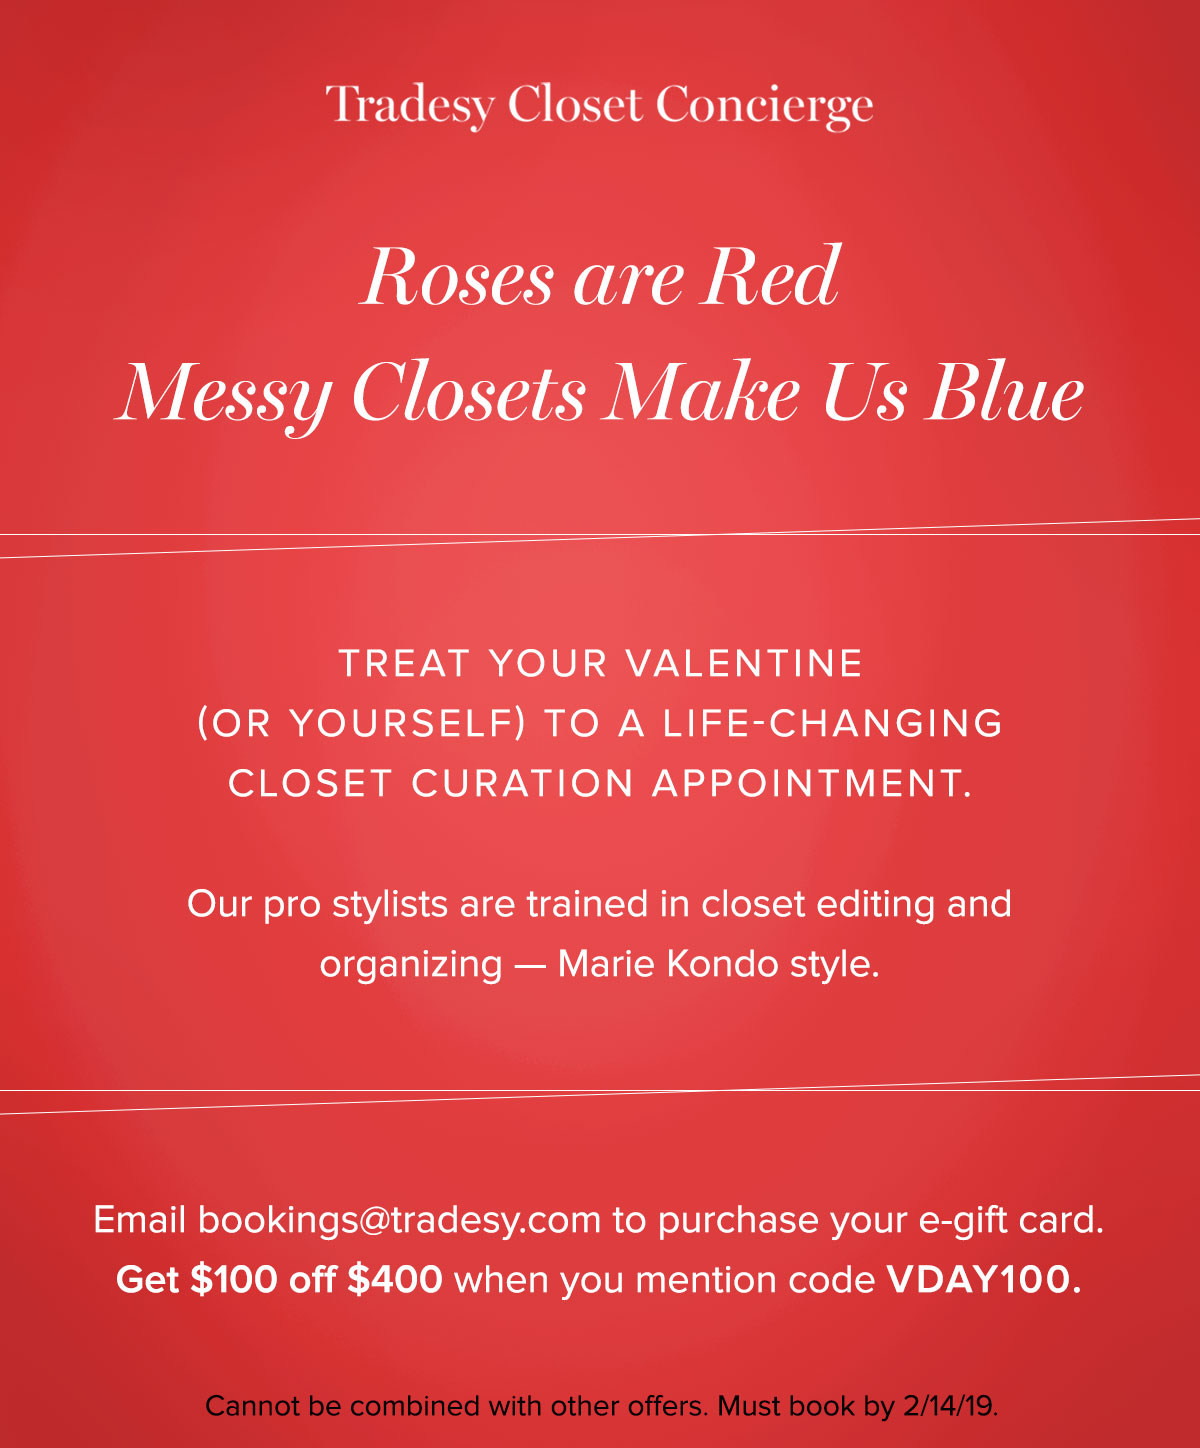 e30123a2bcc Our gift card prices start at $300 for a 2-hour styling session and $400  for a Closet Curation Appointment. Both now $100 off if you book before  Valentine??